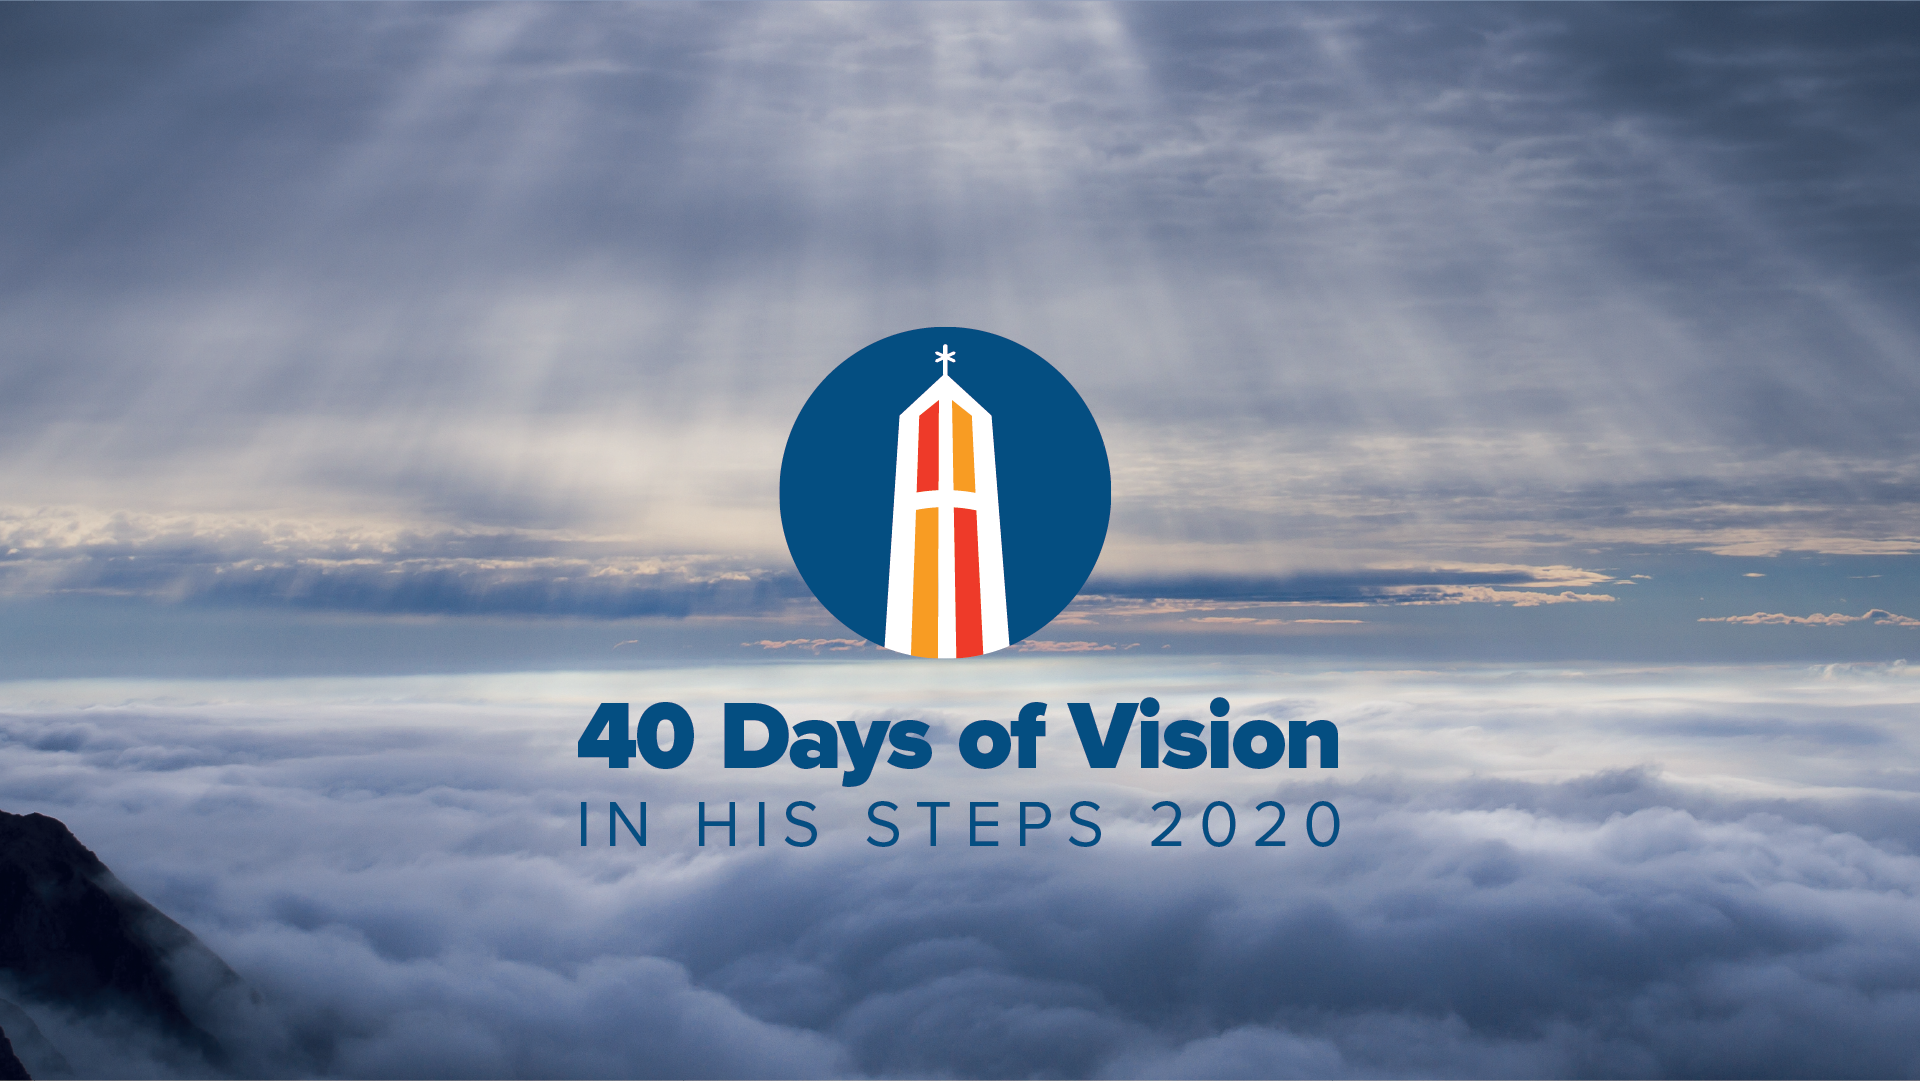 40 Days of Vision: In His Steps